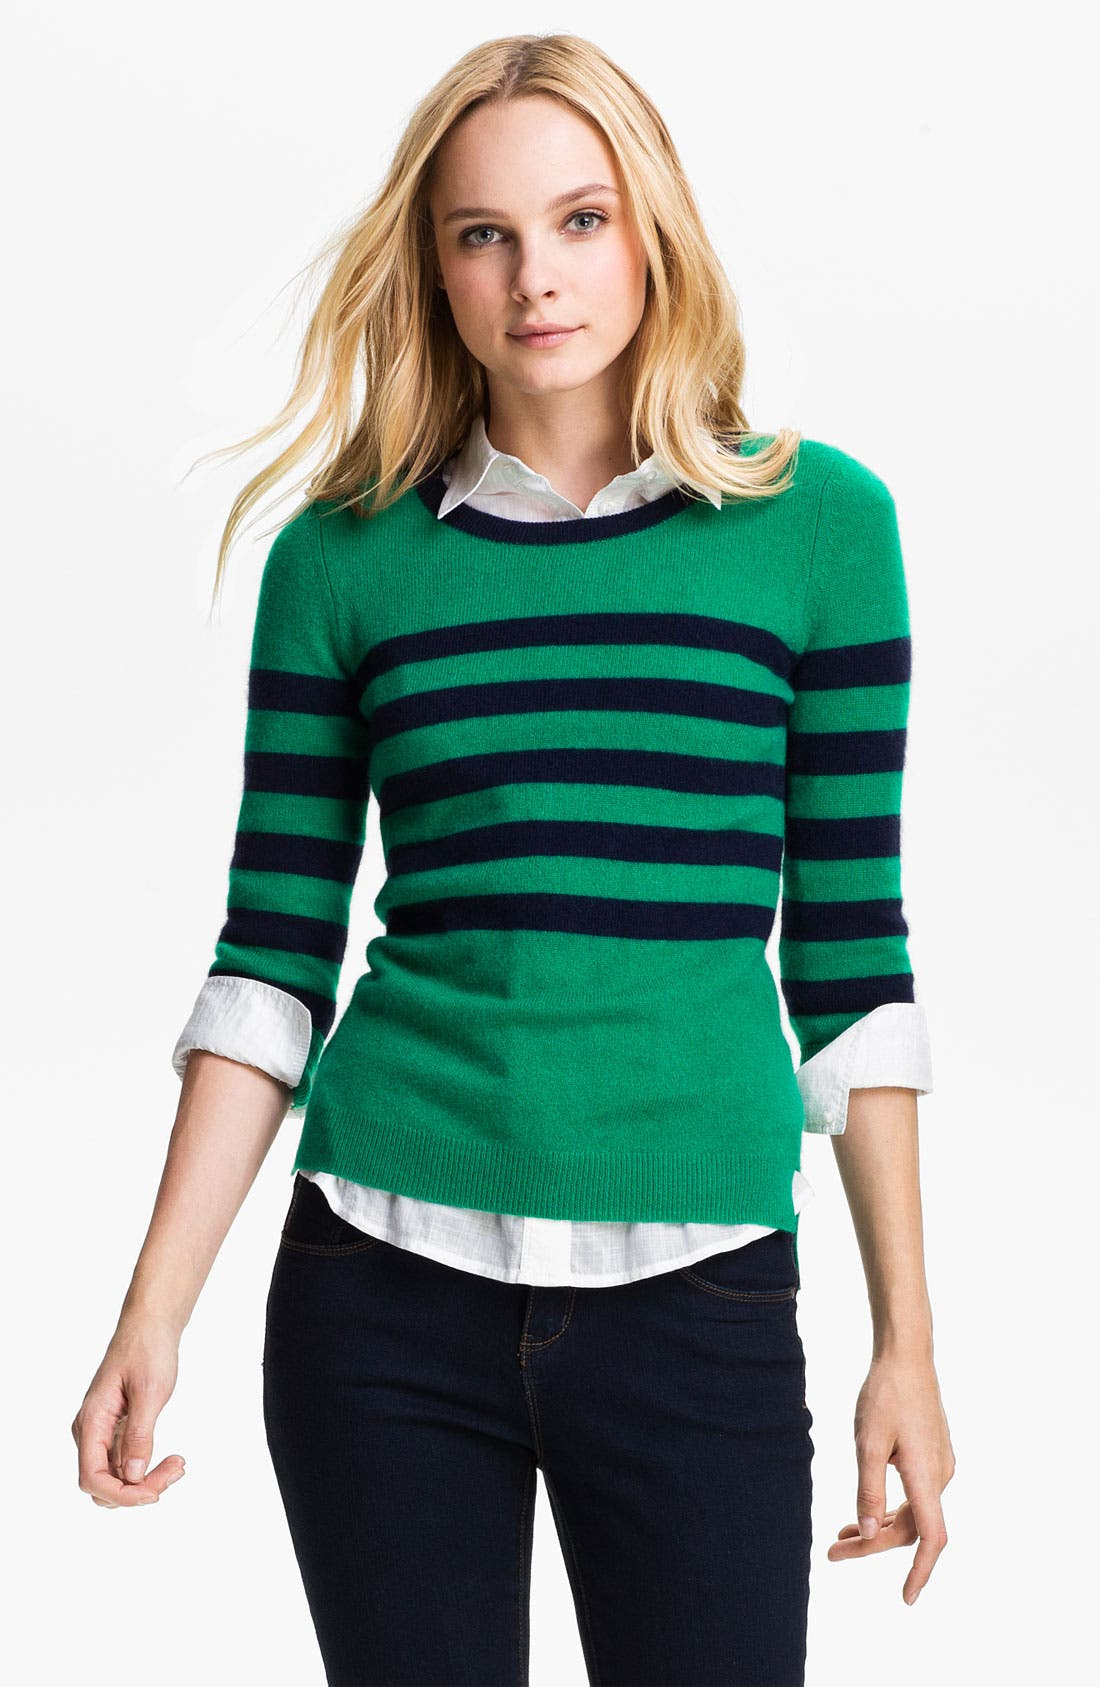 ONLY MINE, Stripe Cashmere Sweater, Main thumbnail 1, color, 366